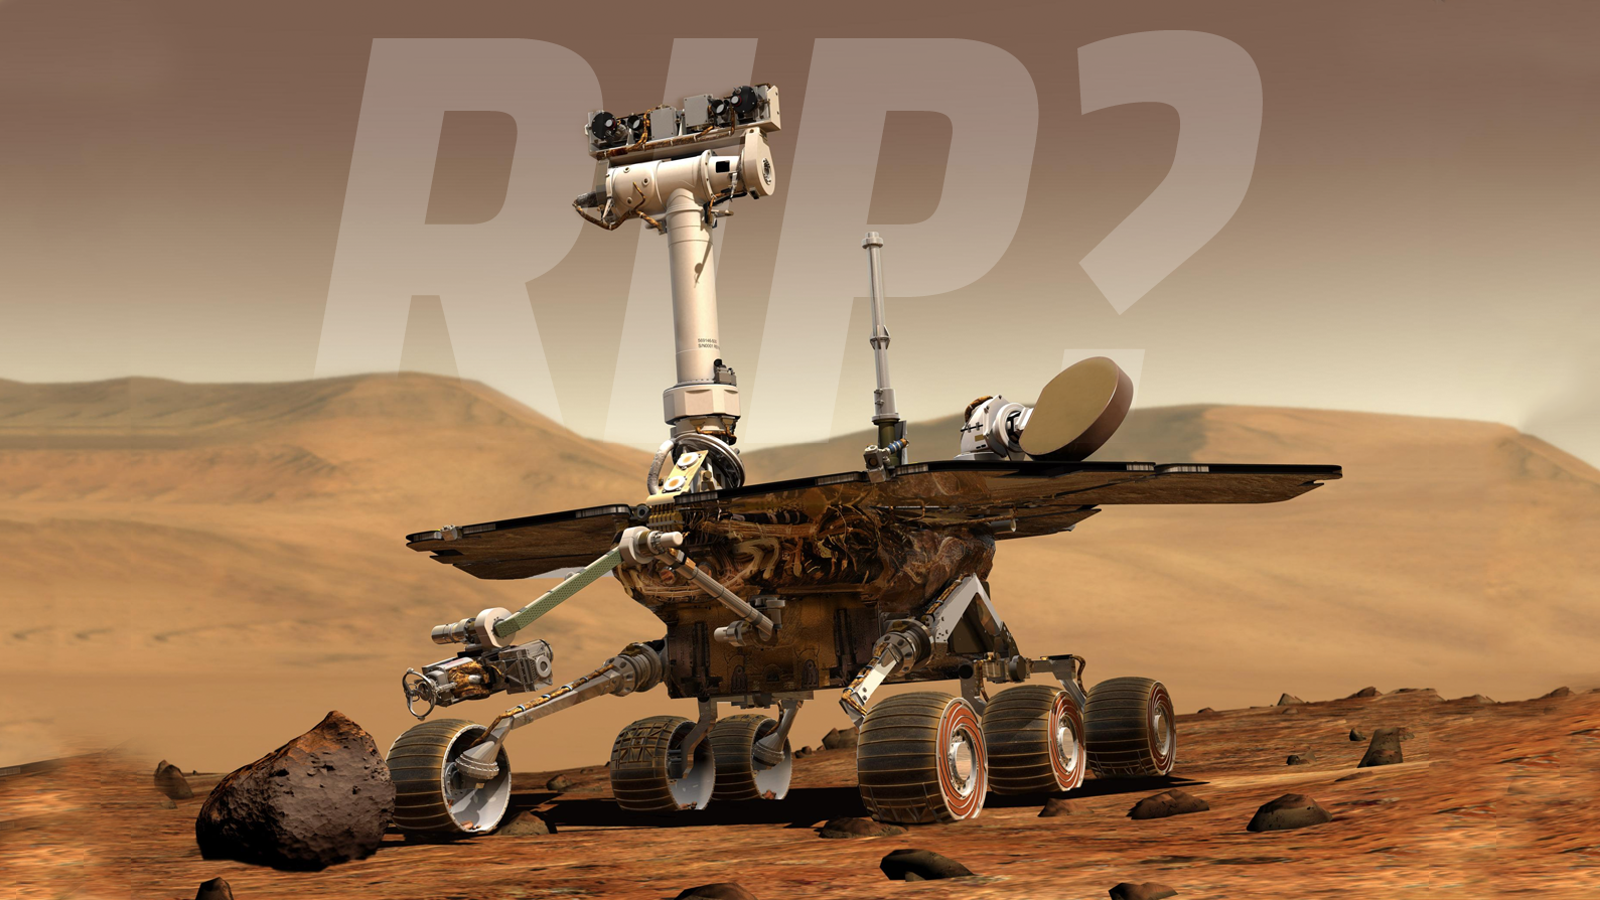 The Plucky Opportunity Rover May Finally Have Died On The